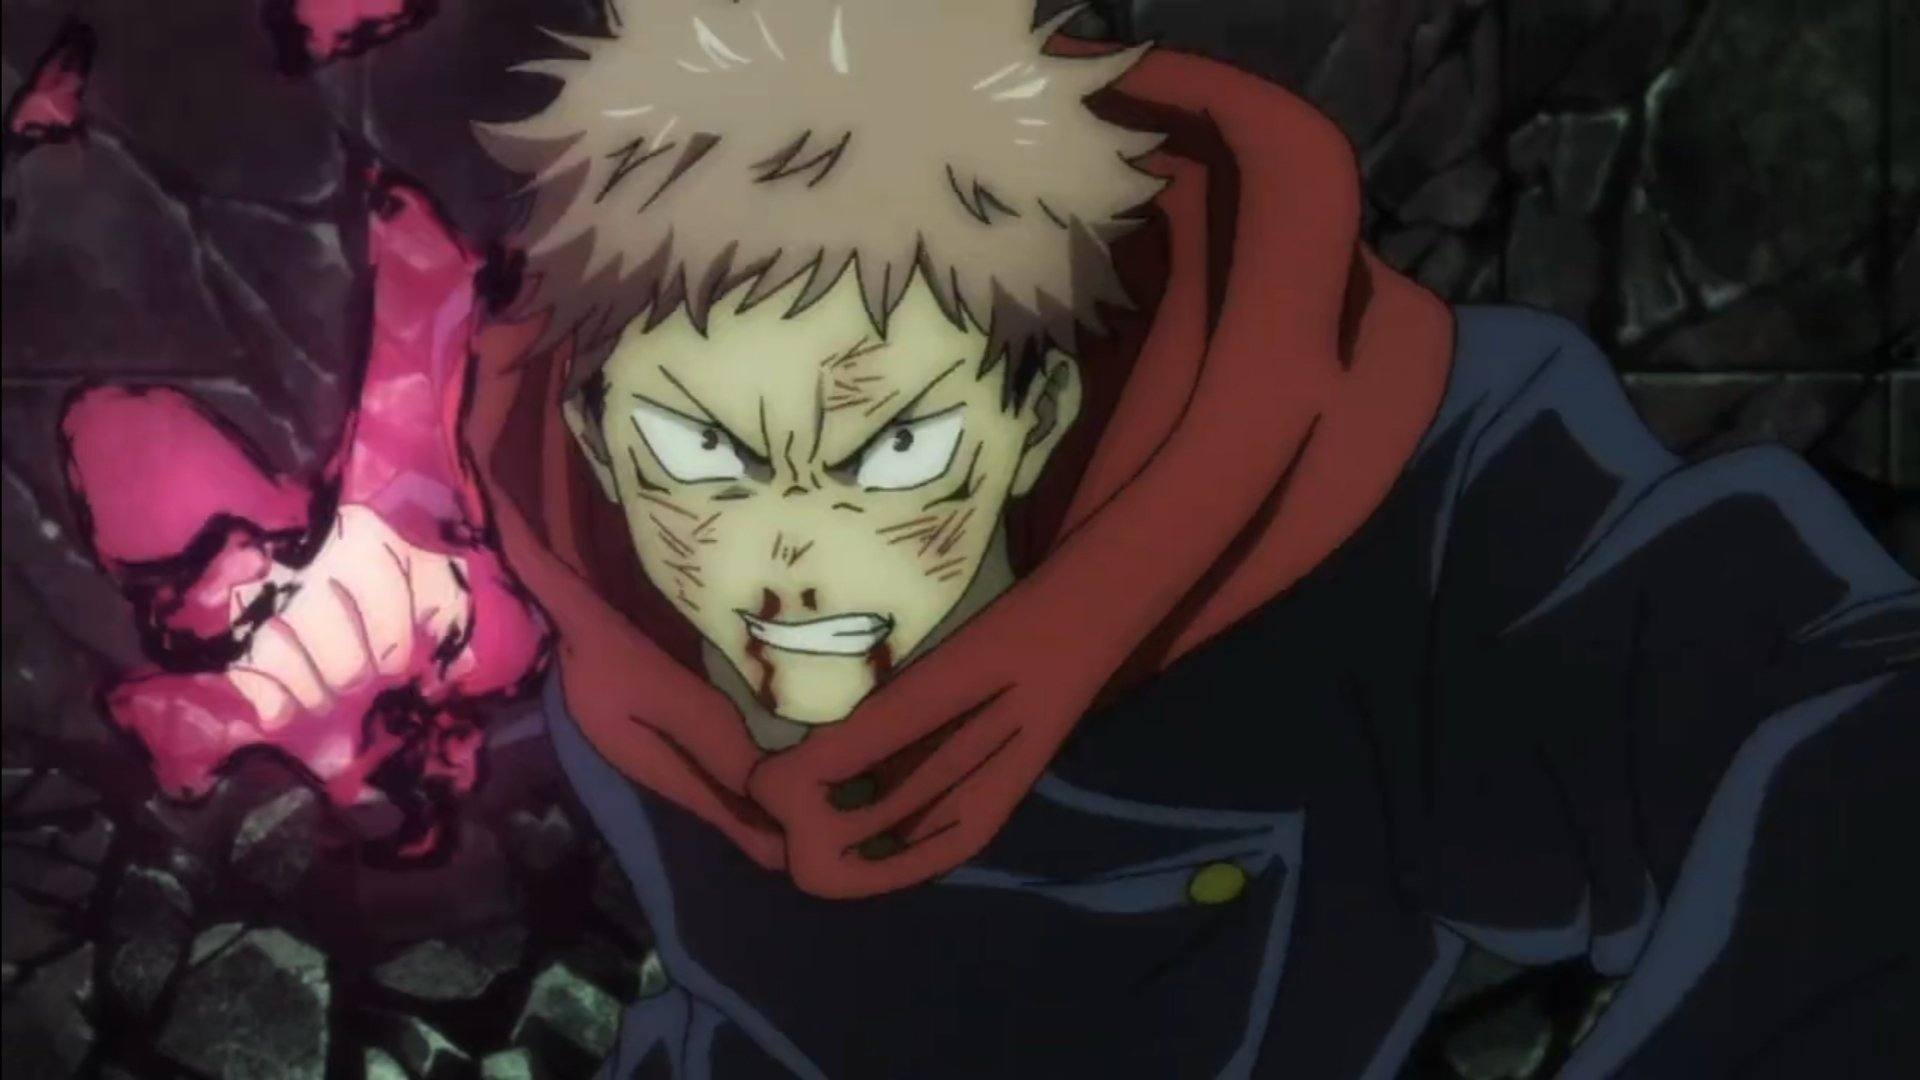 [NEW] Spoilers For Jujutsu Kaisen Chapter 127, Raw Scan, Release, and much more